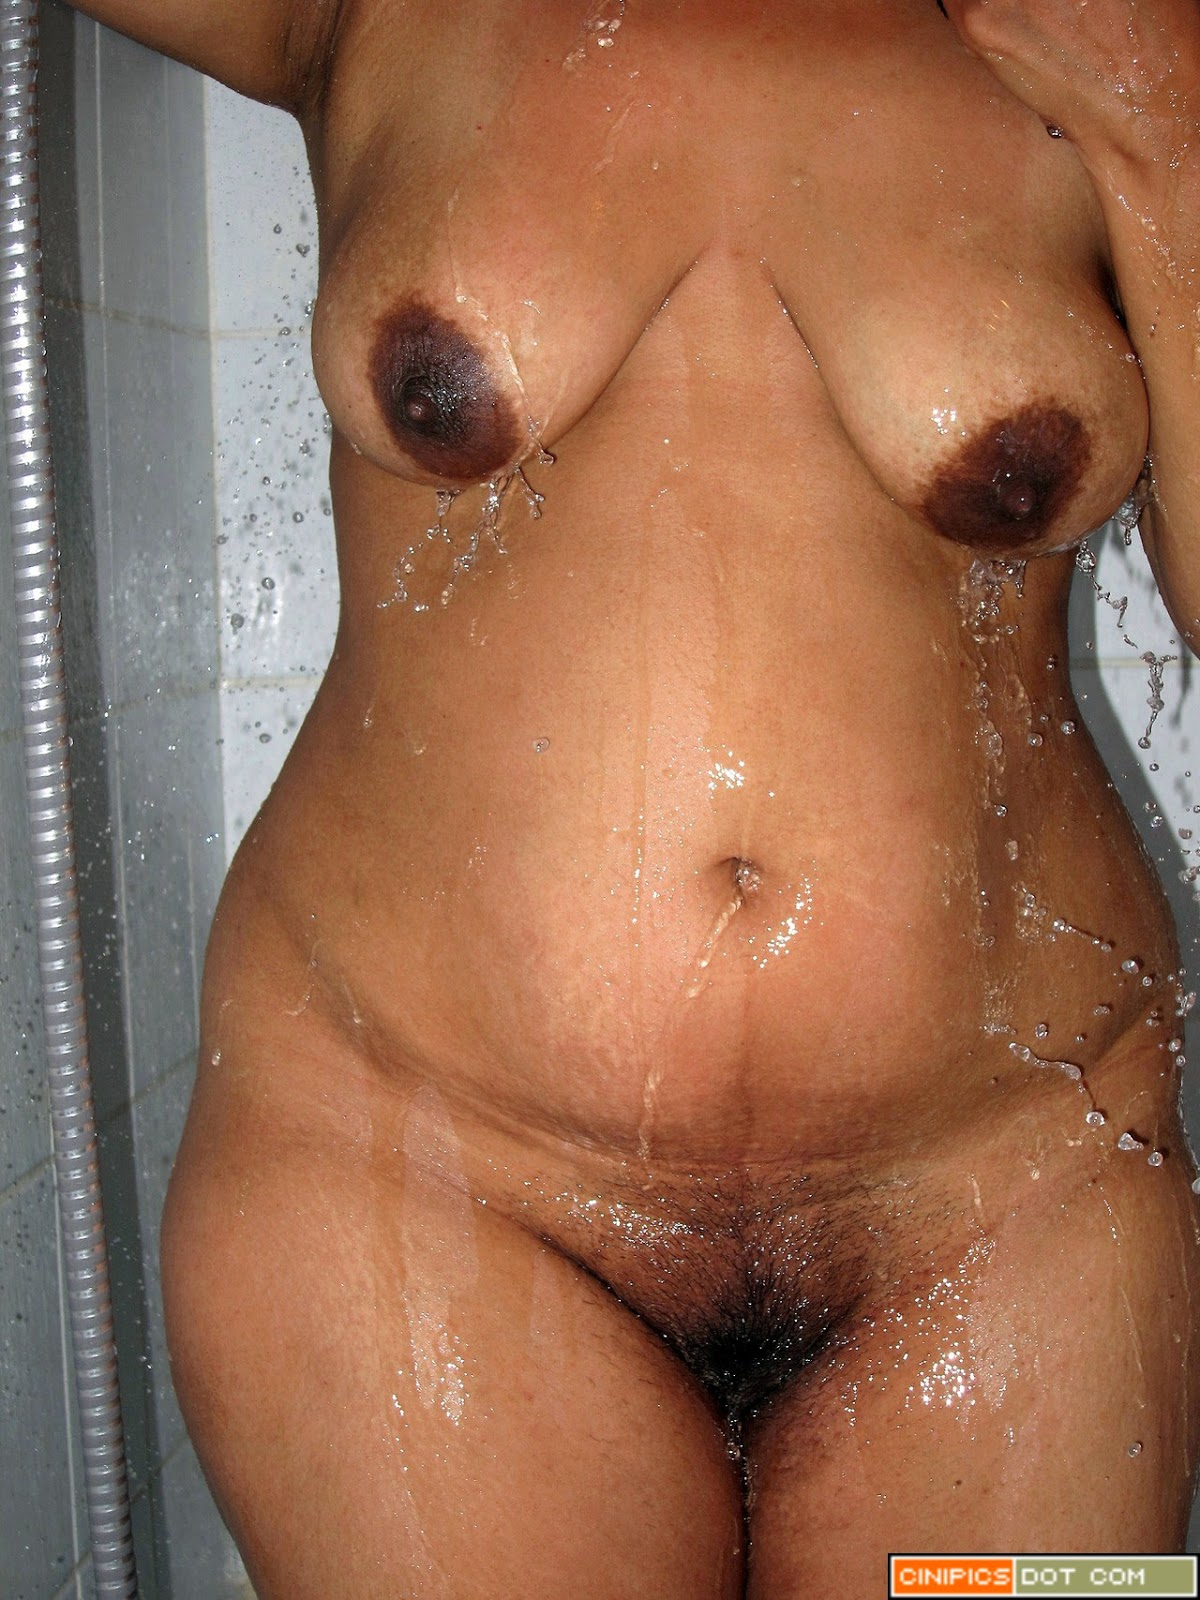 woman bare bathing royalty